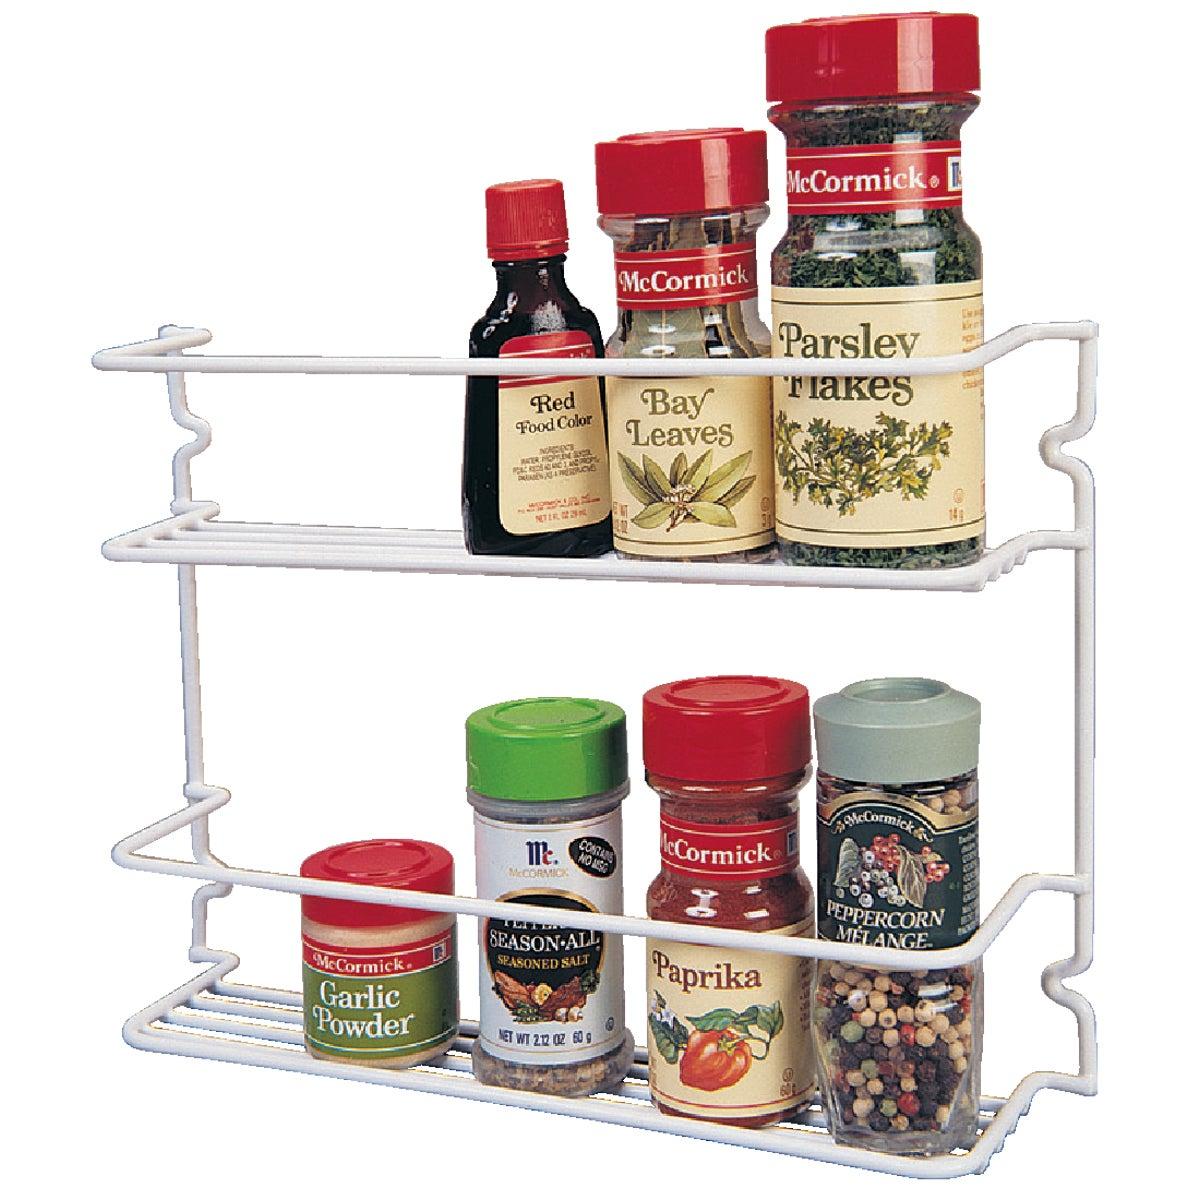 WIRE SPICE RACK - 40504 by Panacea    Grayline